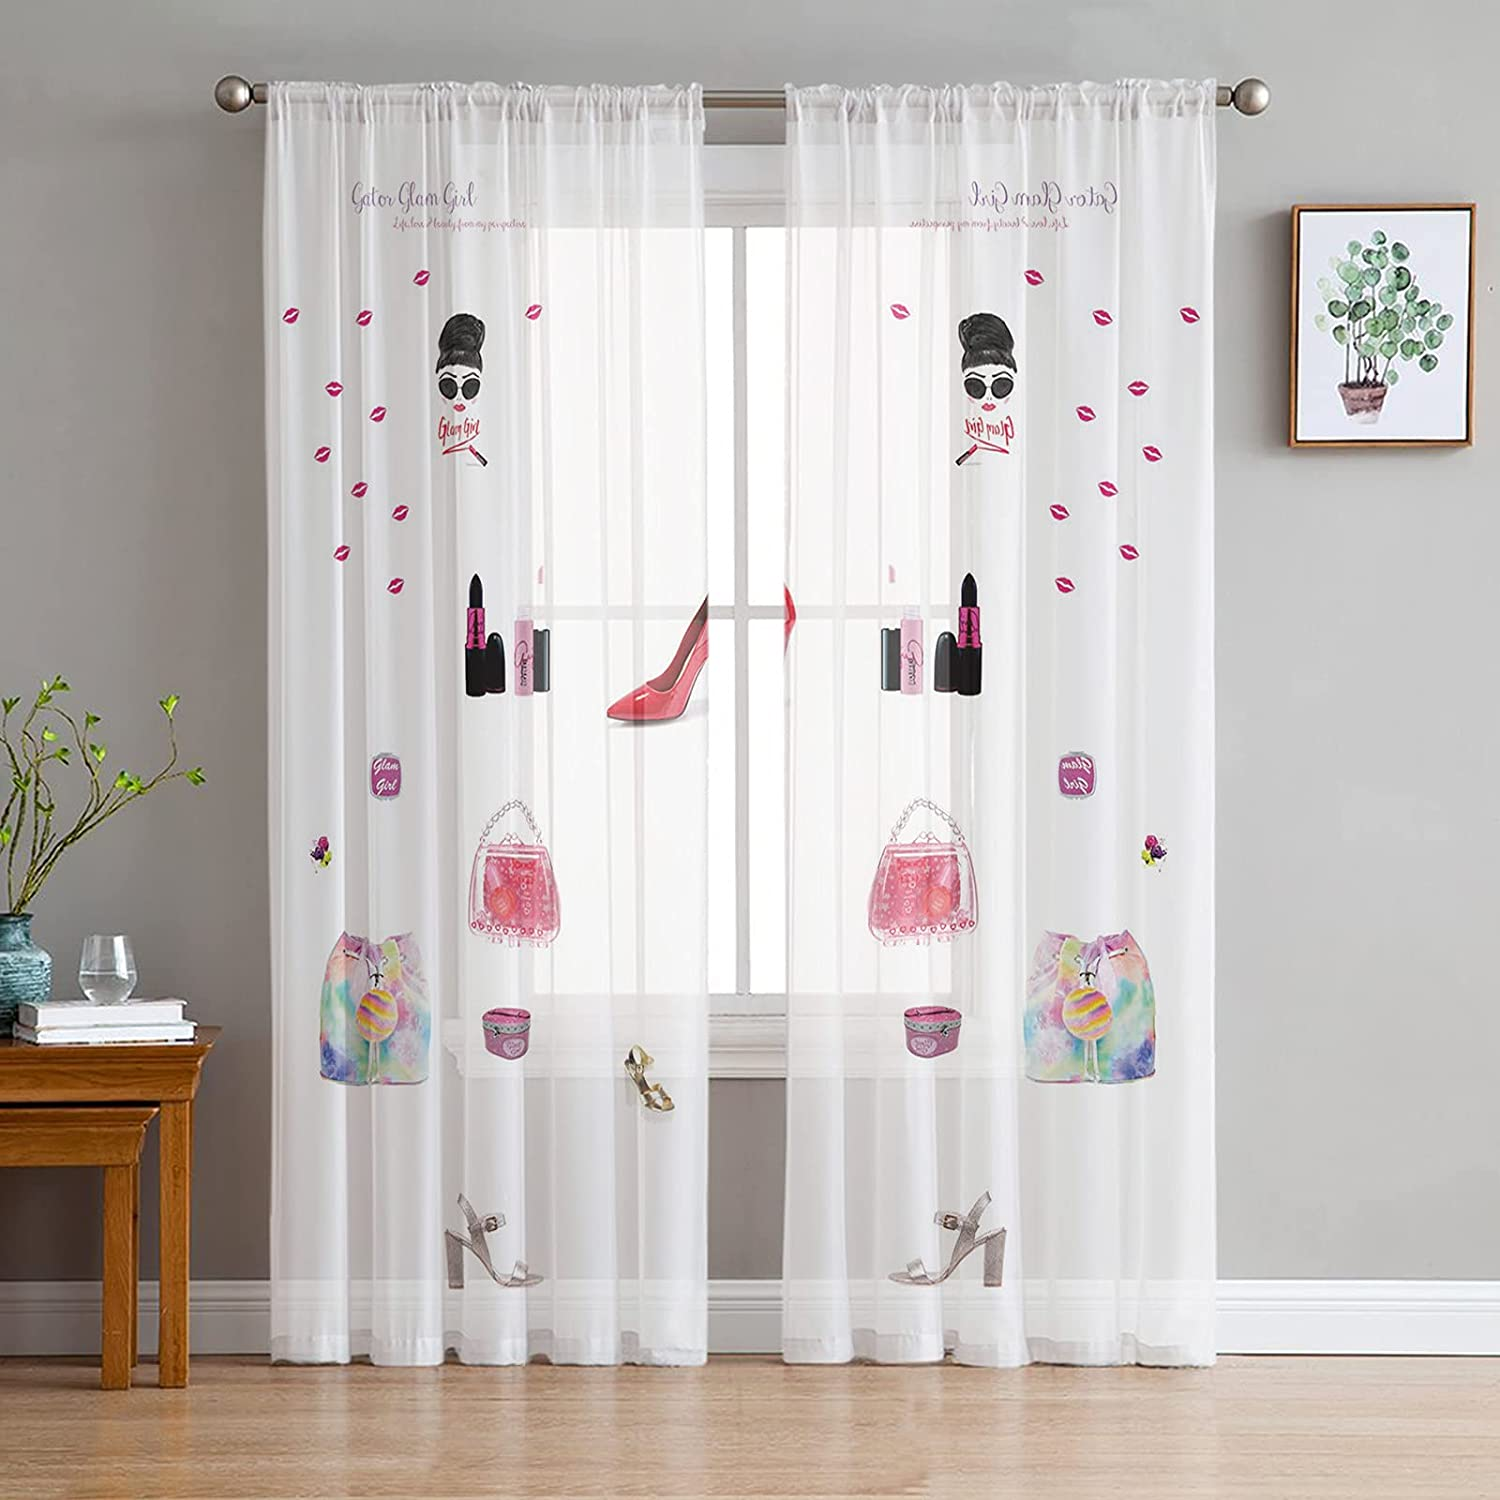 FAMILYDECOR Award-winning store Sheer Curtains 96 inches Grommet Voile W Free shipping anywhere in the nation Long Drapes